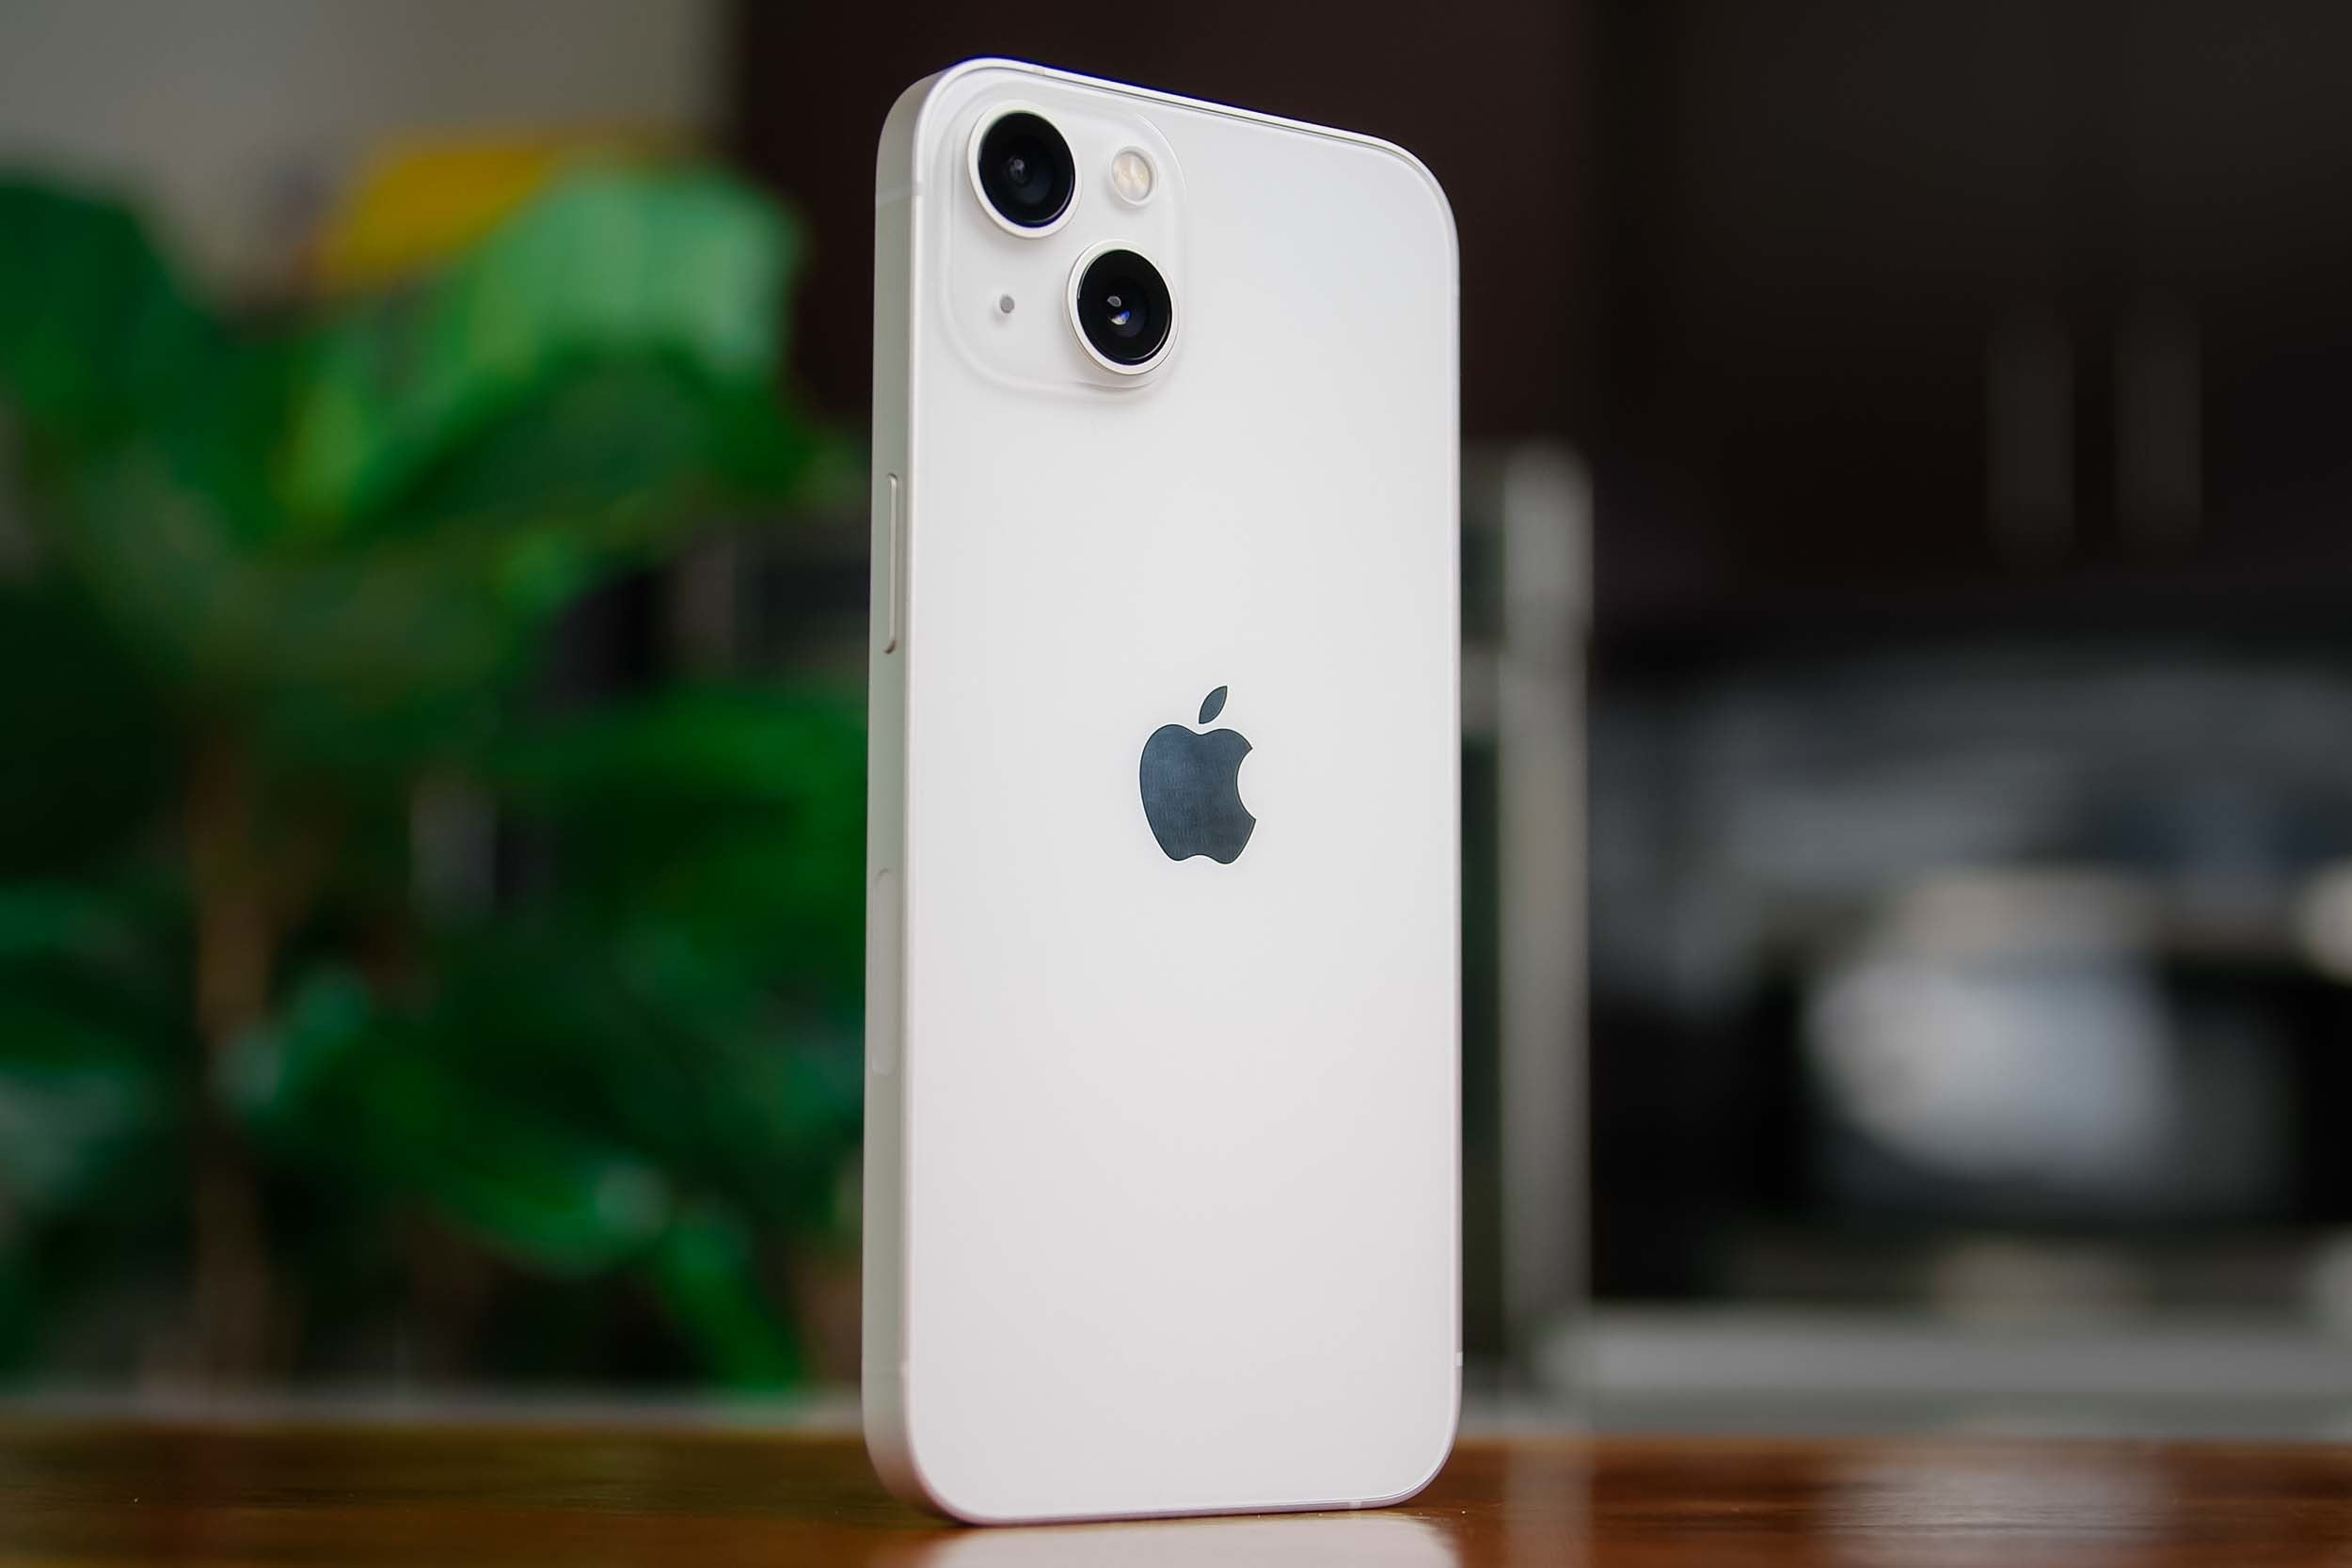 iPhone 13 showing back angled.